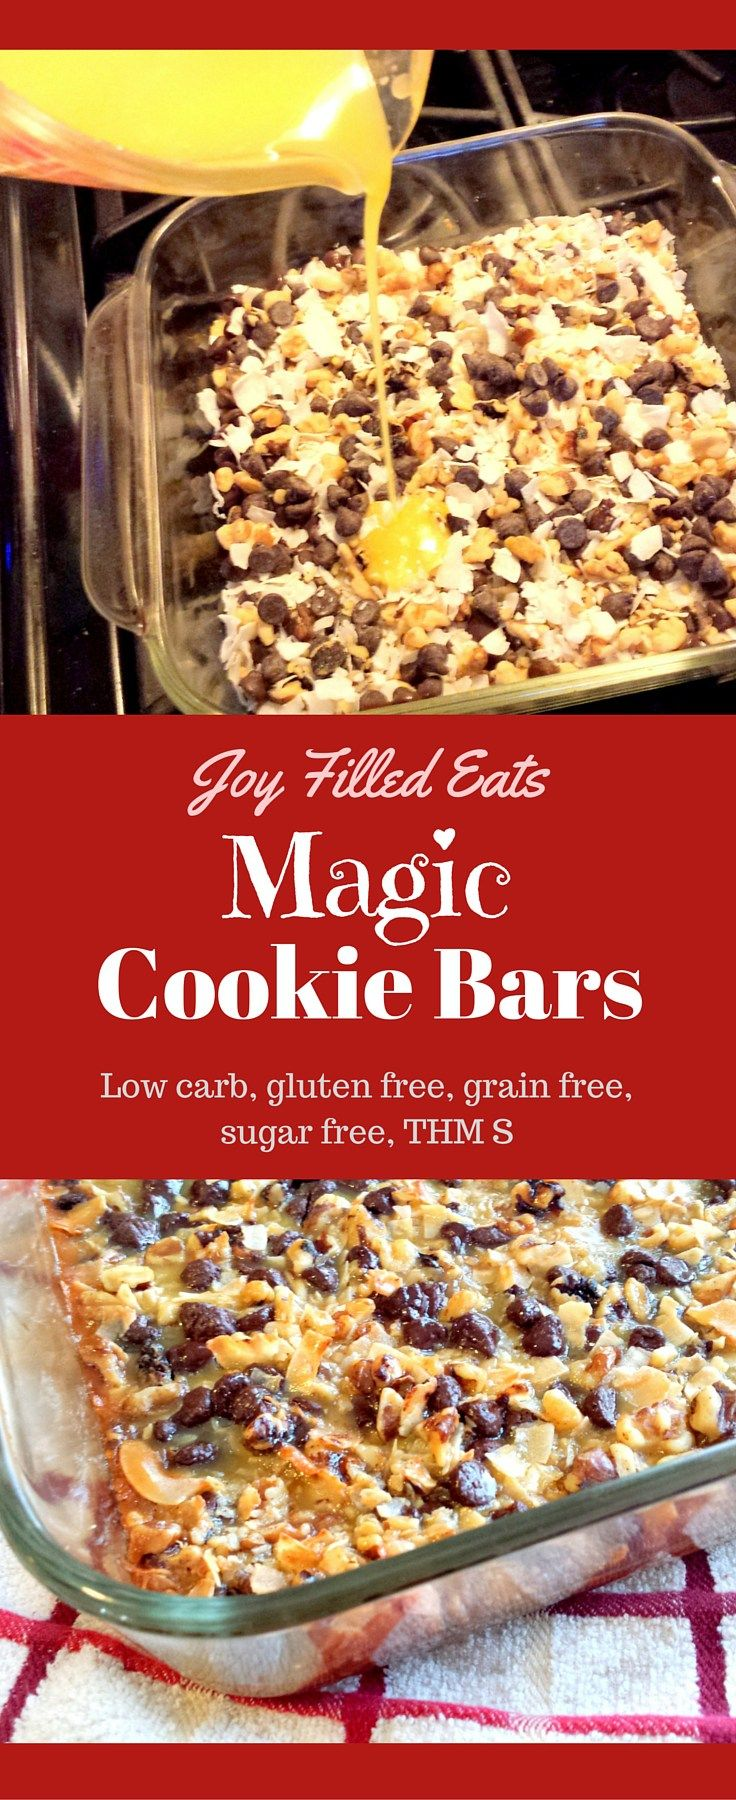 These Magic Cookie Bars taste just like the 'real' ones. No one will ever know they are sugar free, grain free, gluten free, low carb, and a THM S.